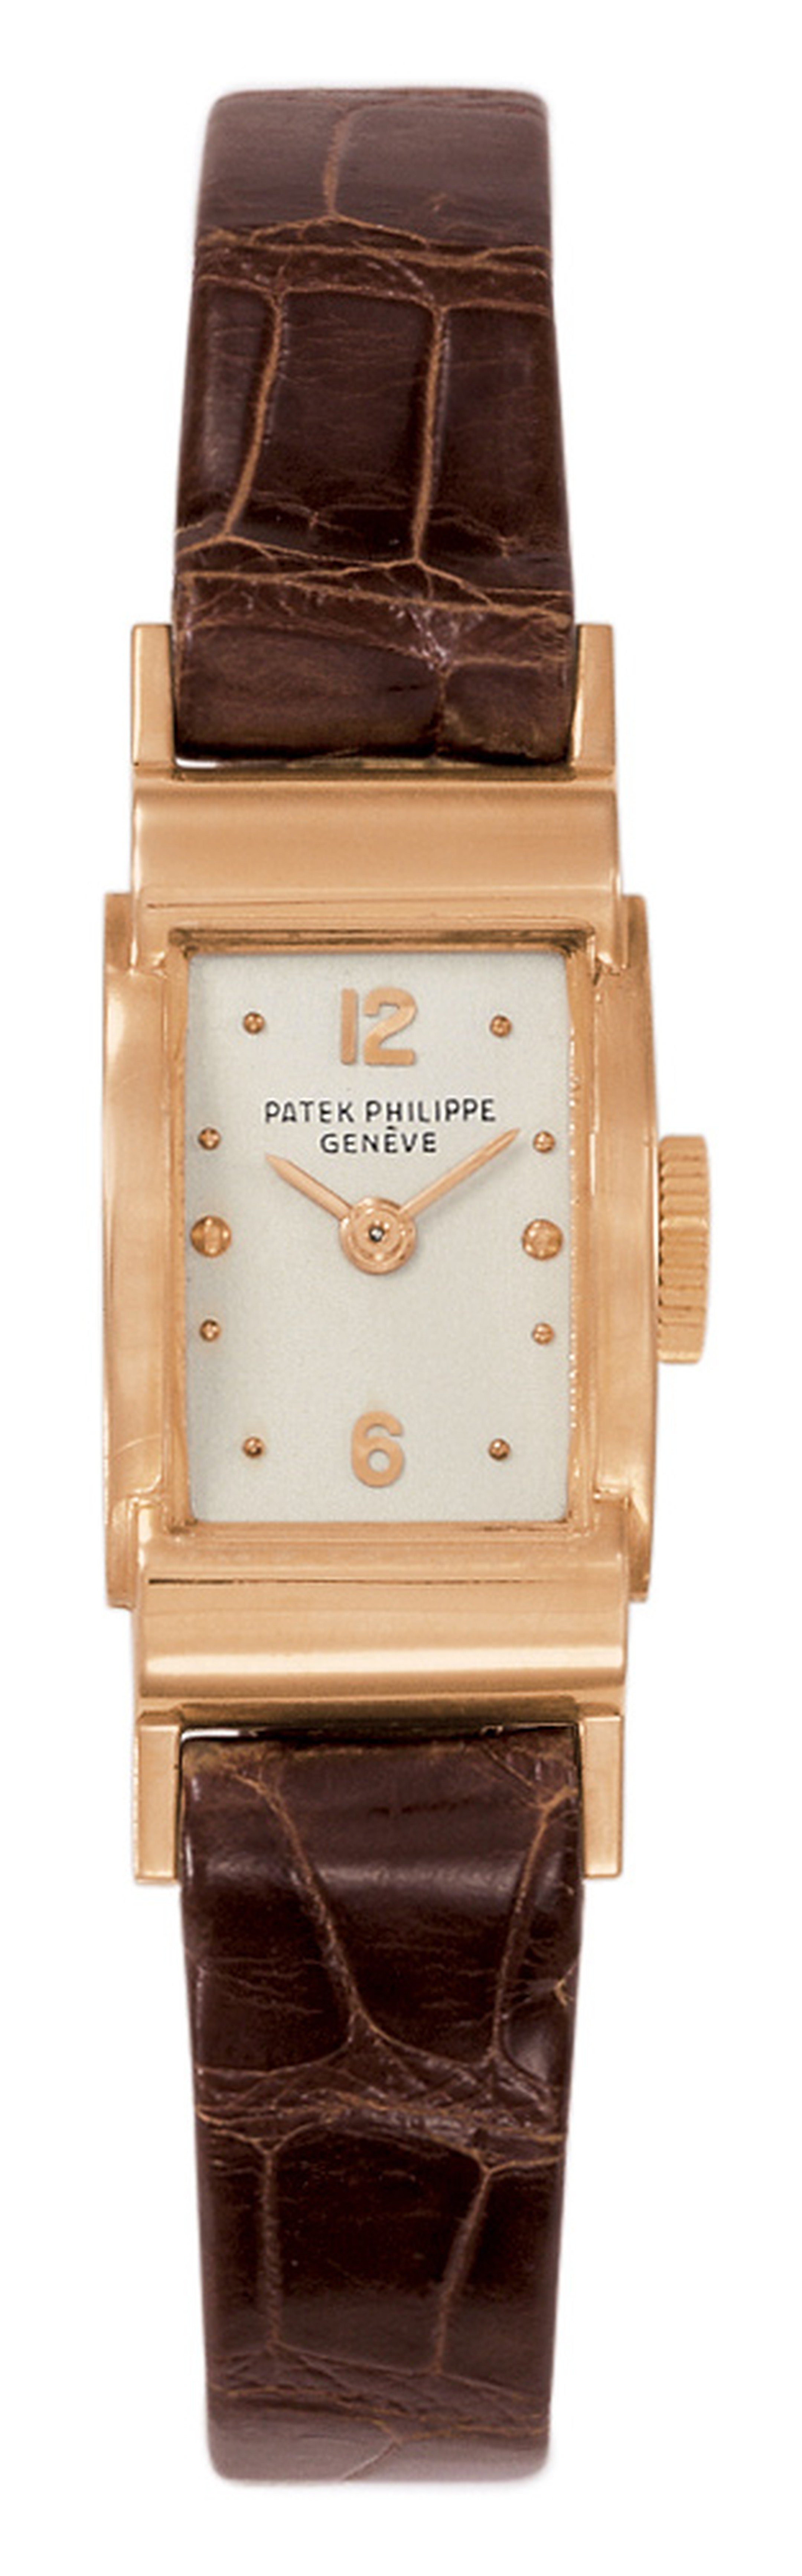 Patek-Philippe-P0530_a_100_collection-1940-60